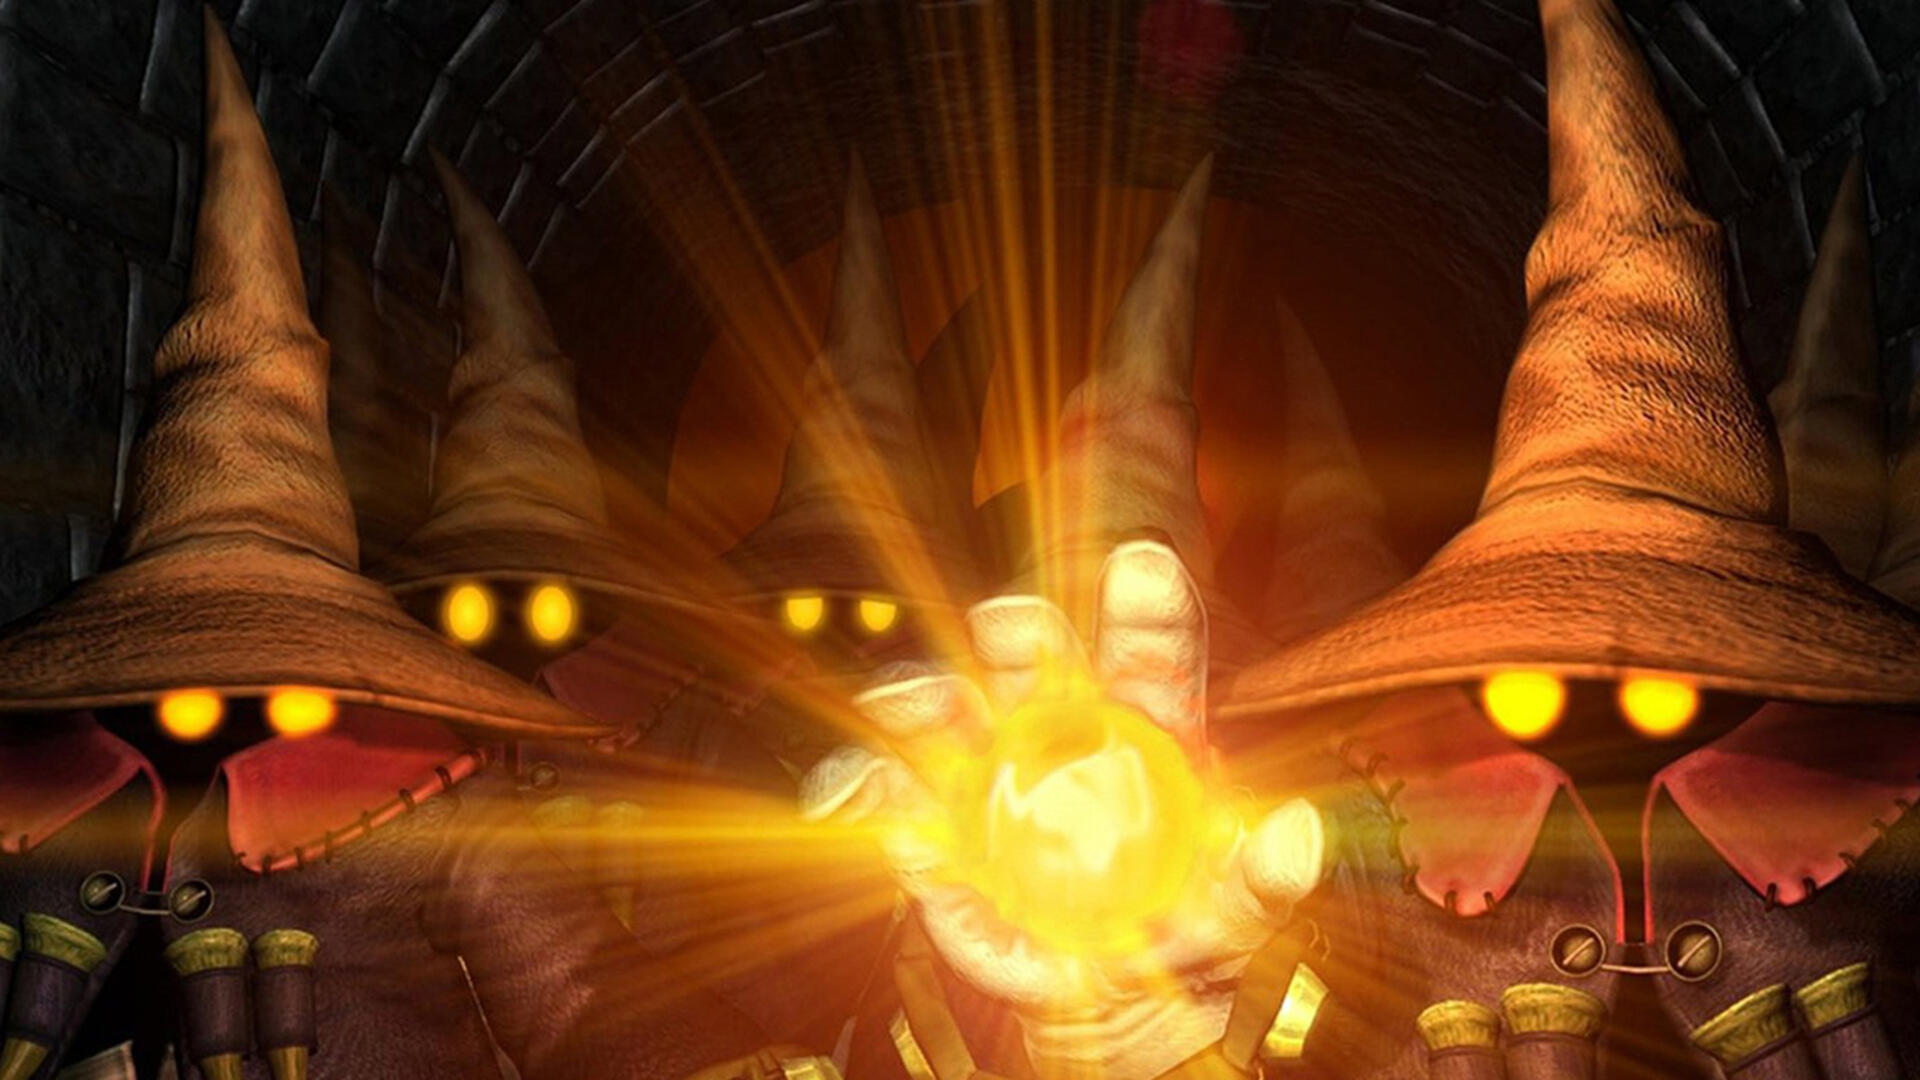 Fans Give Final Fantasy 9's Cutscenes a Sweet 4K Upgrade